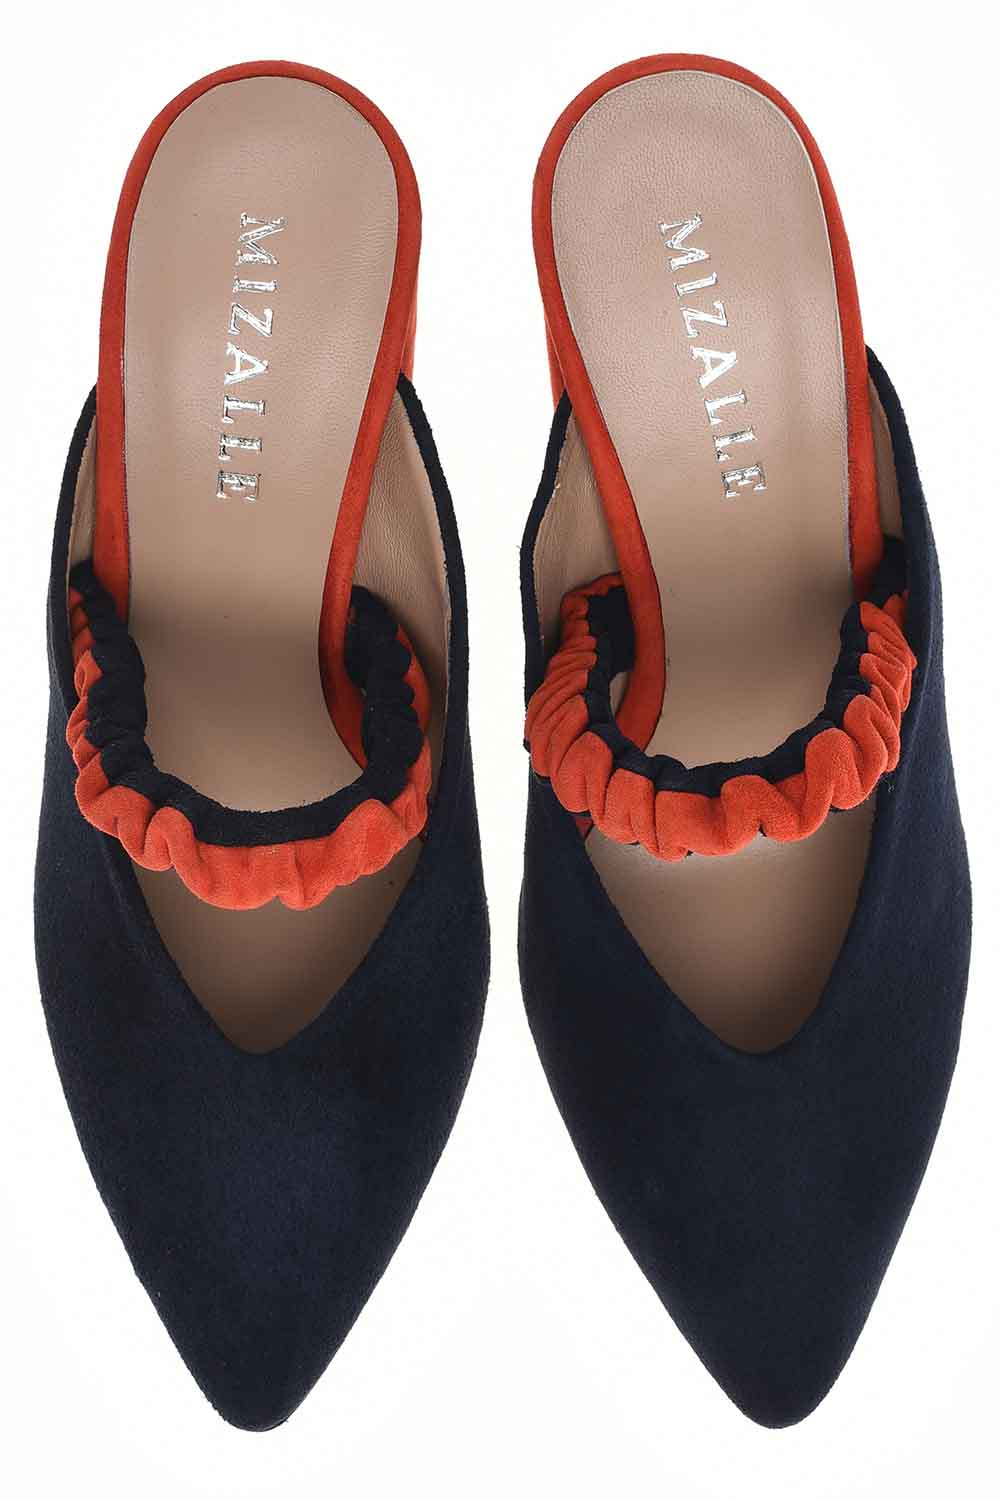 MIZALLE Two Colored Leather Shoes (1)